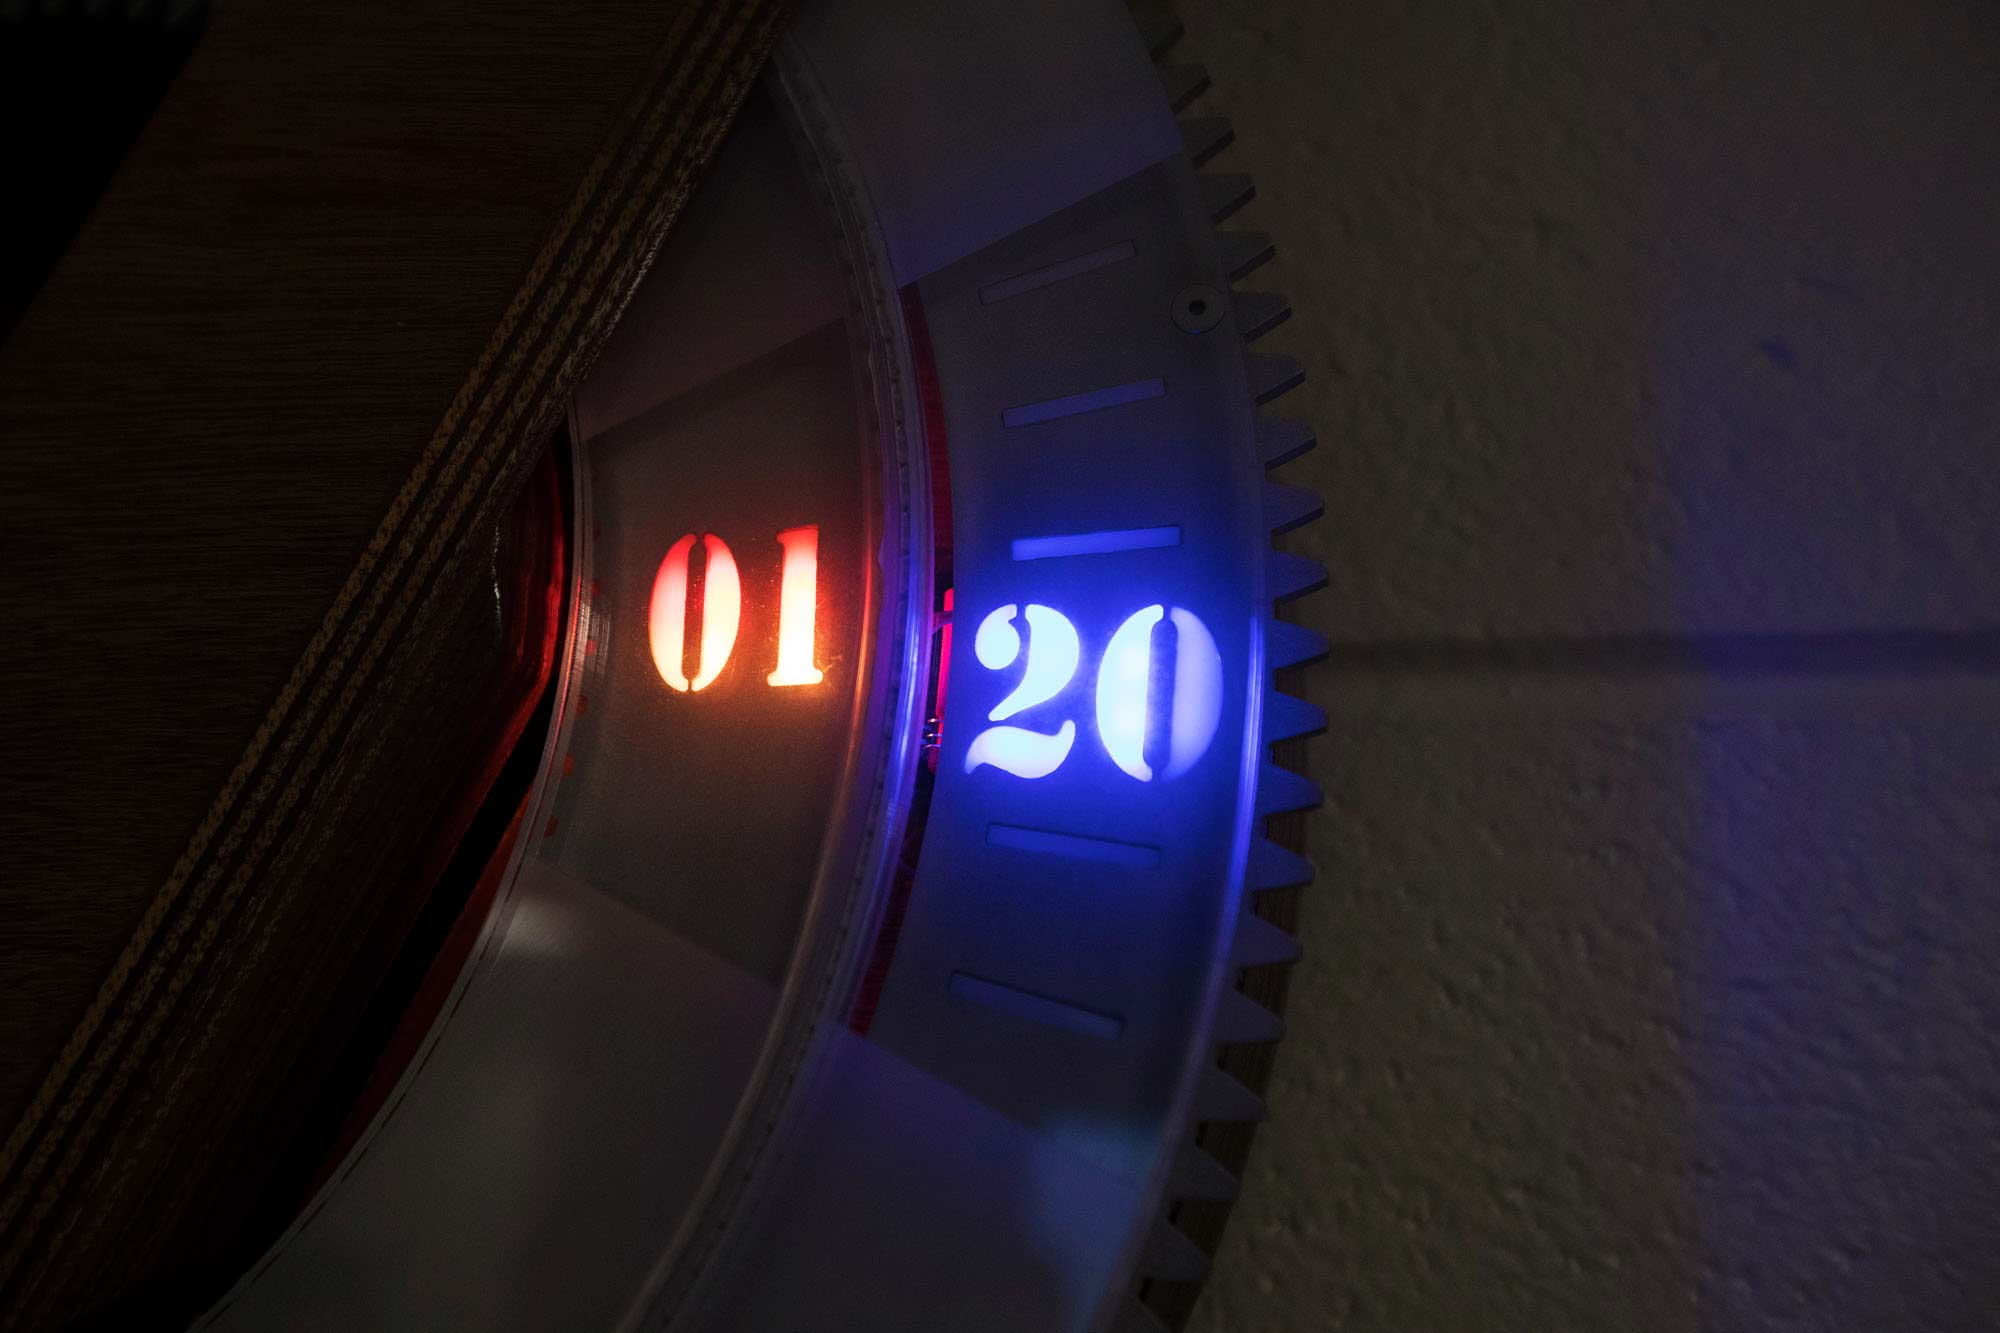 Close up of the clock displaying the time 1:20.